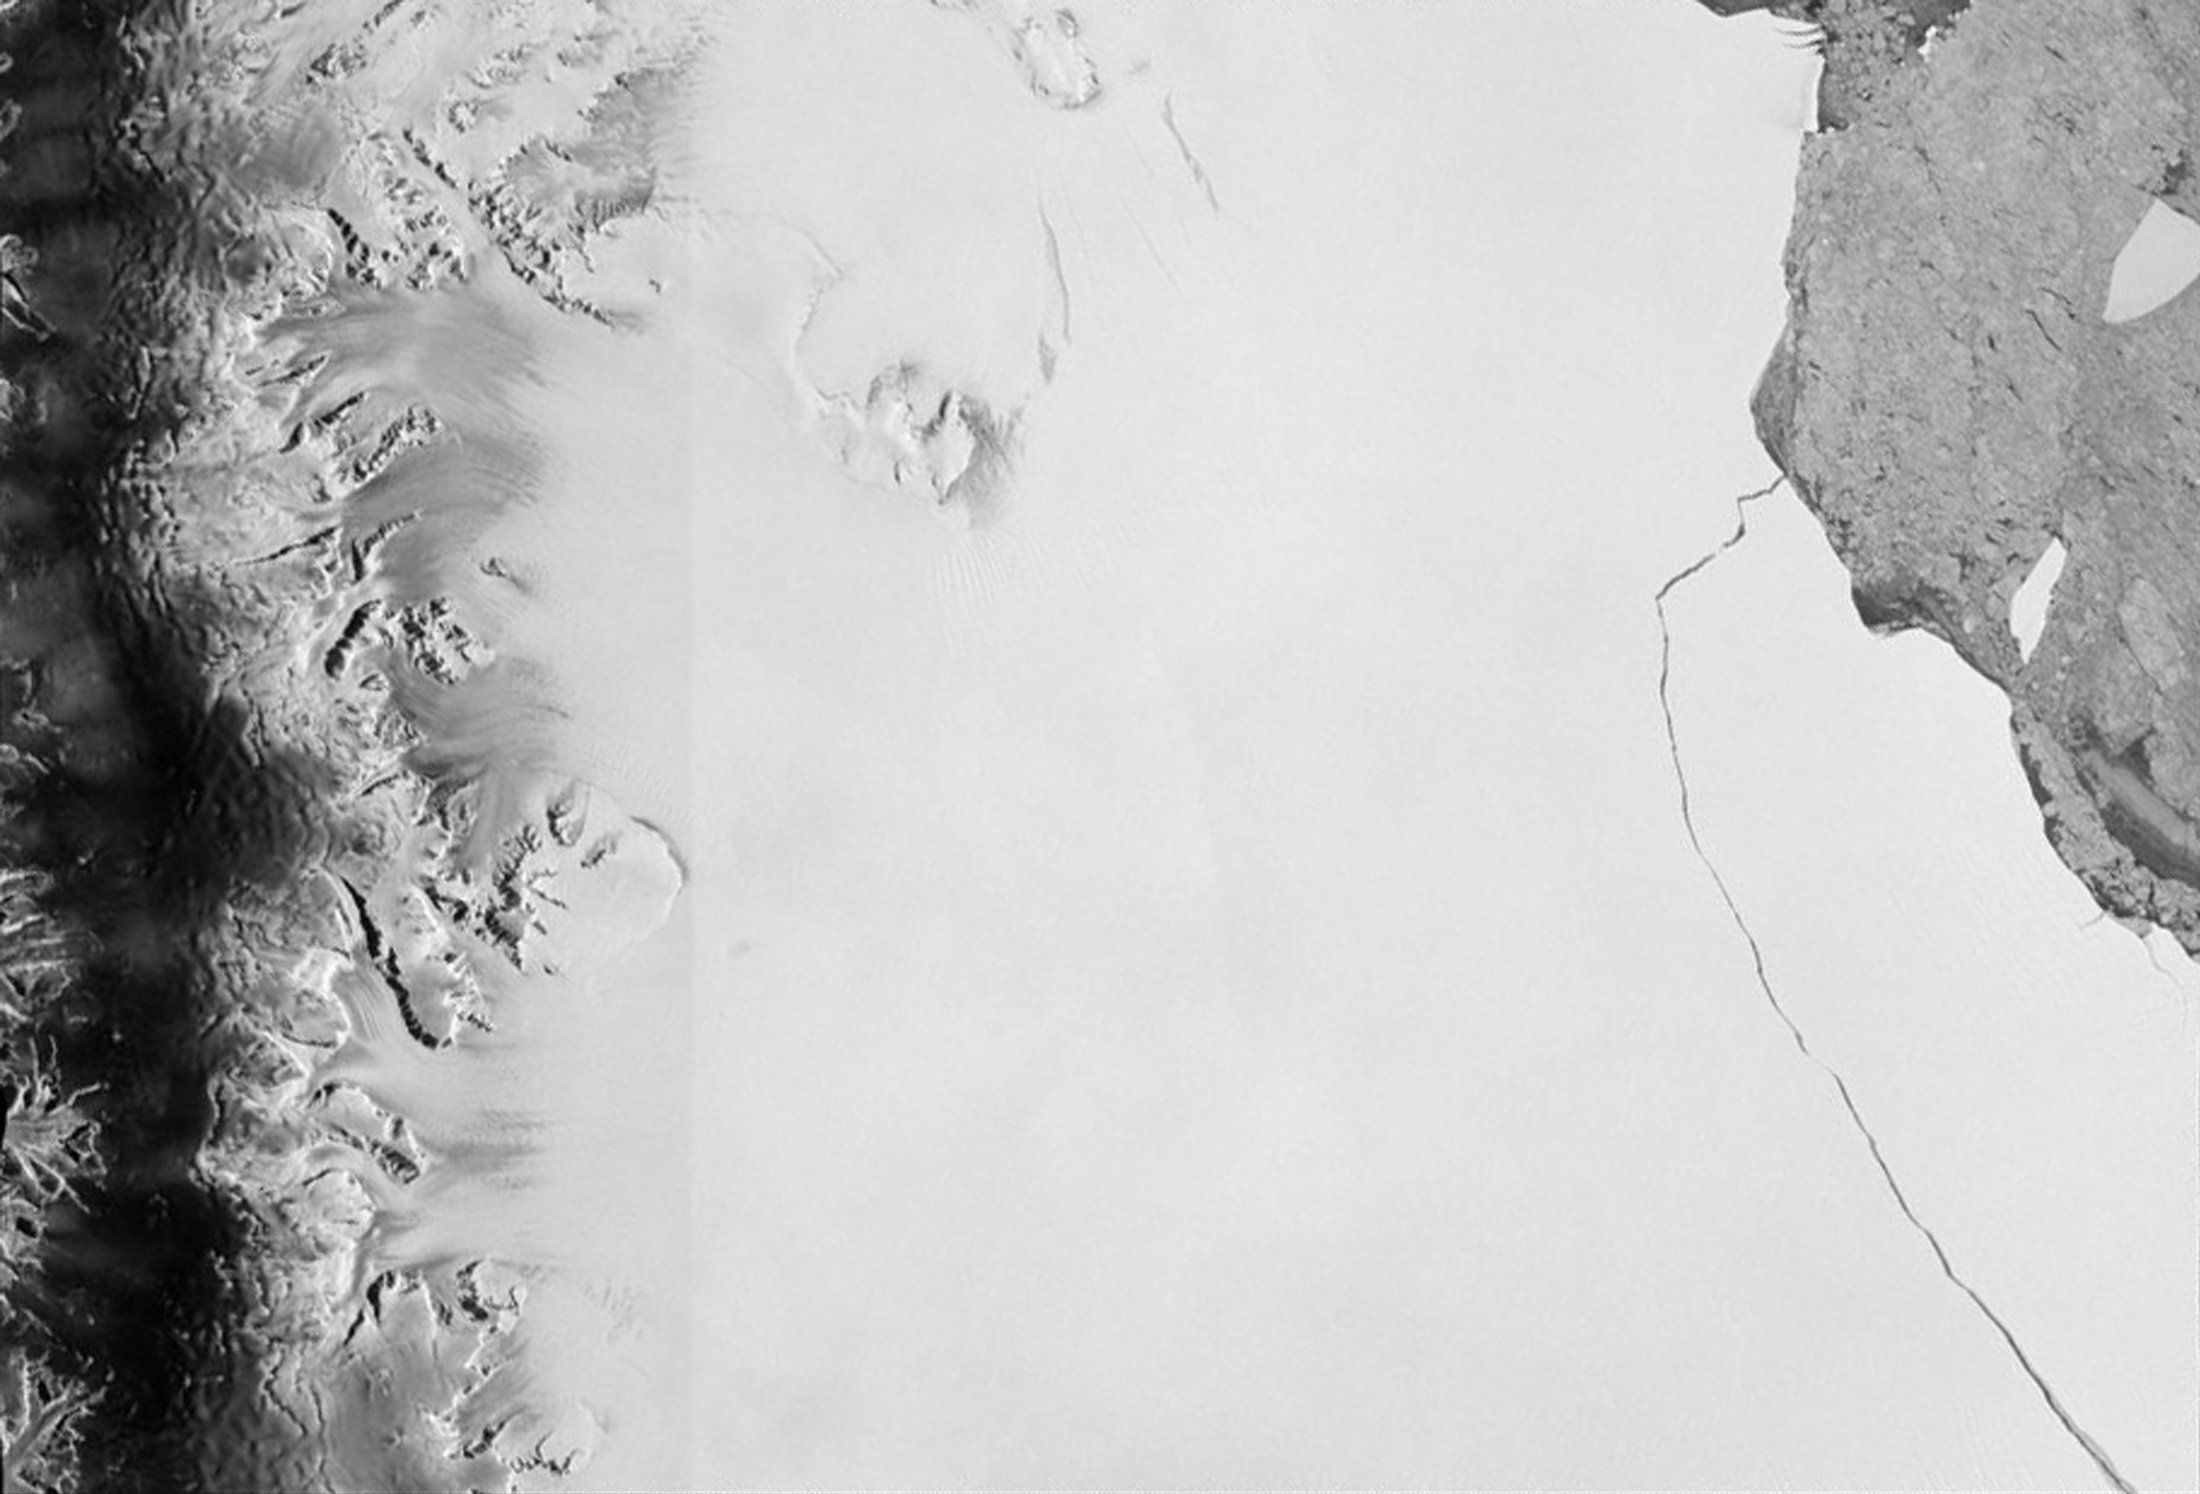 Researchers film glacier calving massive iceberg in Greenland